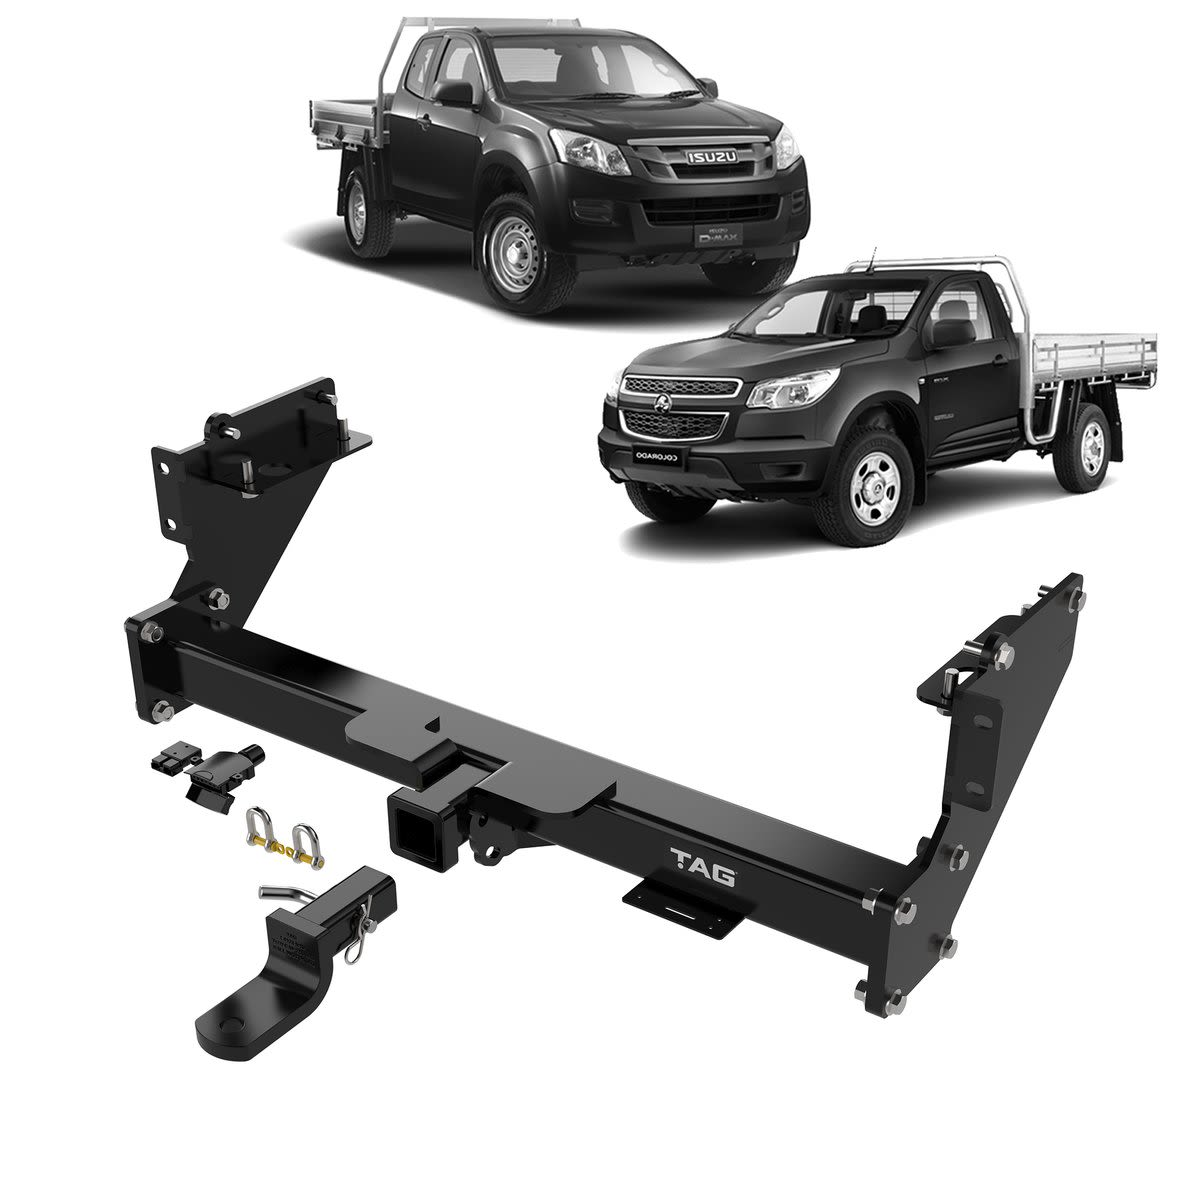 TAG Heavy Duty Towbar to suit Holden Colorado (01/2012 - on)